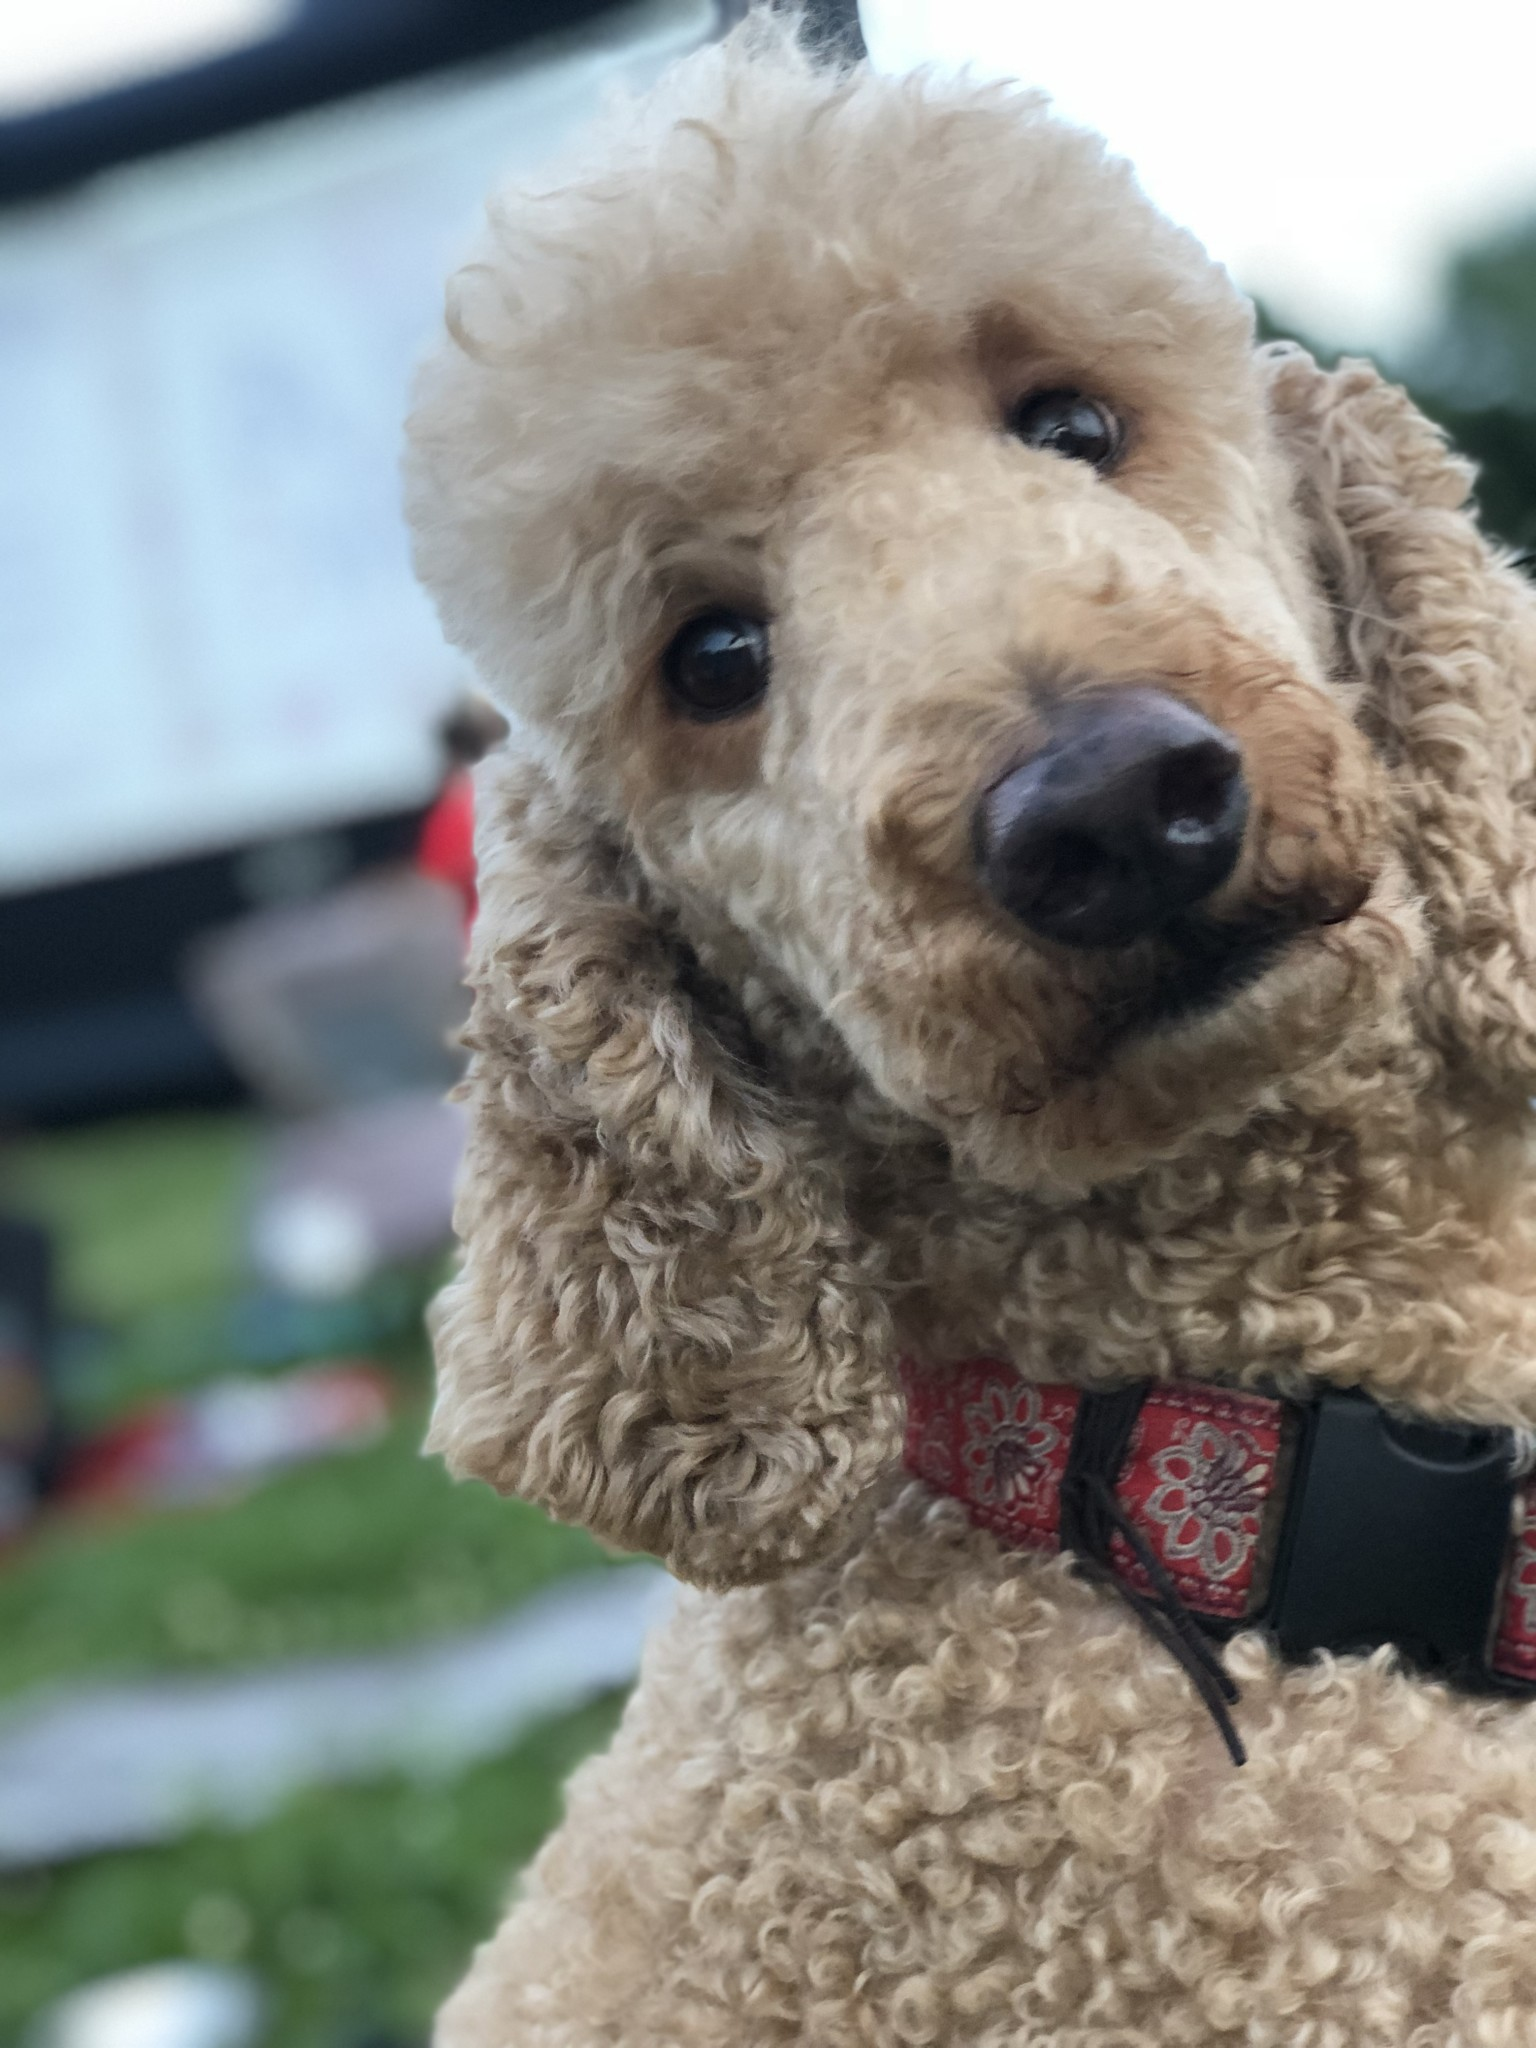 Apricot standard poodle at movies in the park in Nashville TN. Companion dog at Red Rover Pet Services LLC.